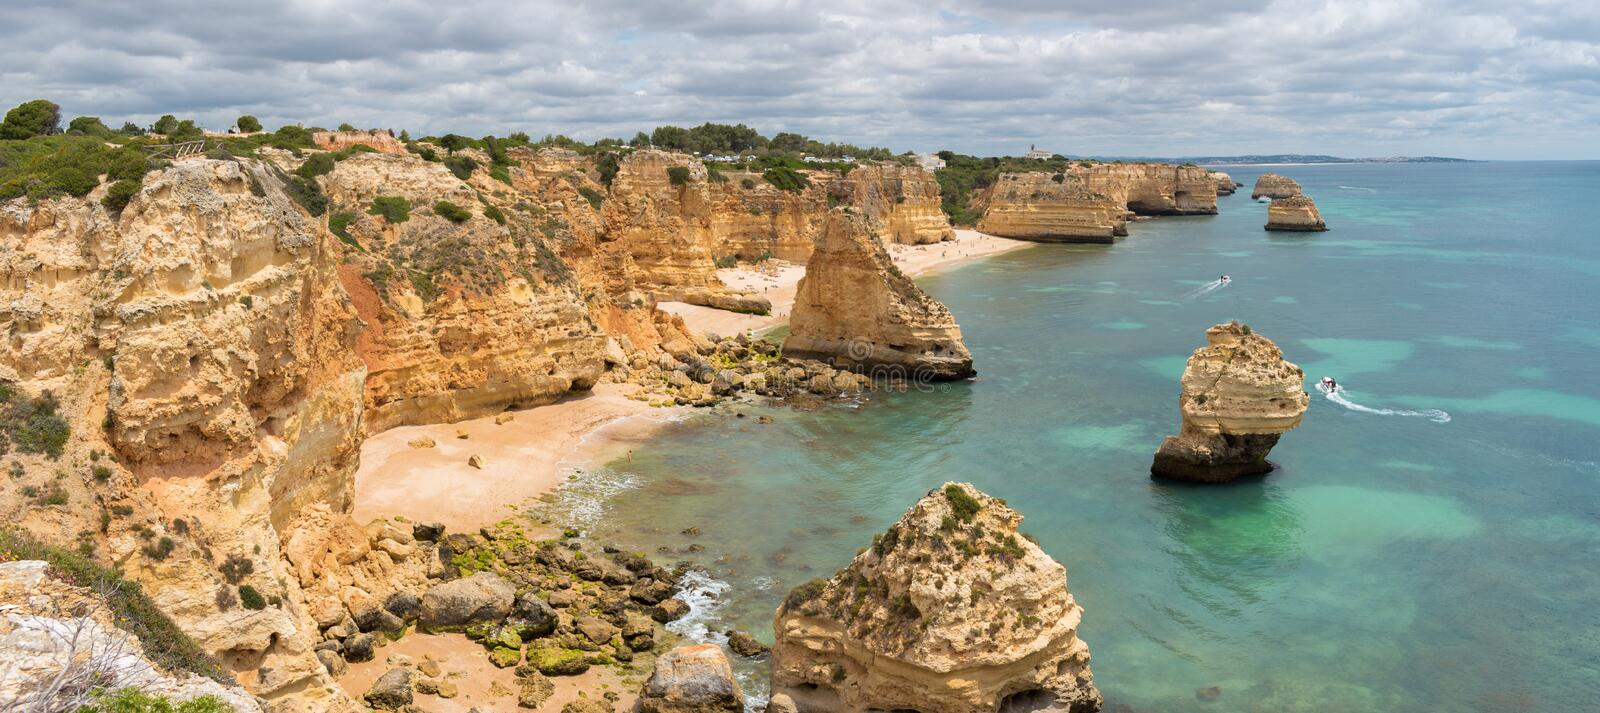 Panorama of Praia da Marinha on the south coast of Portugal in the Algarve on a cloudy day royalty free stock photography